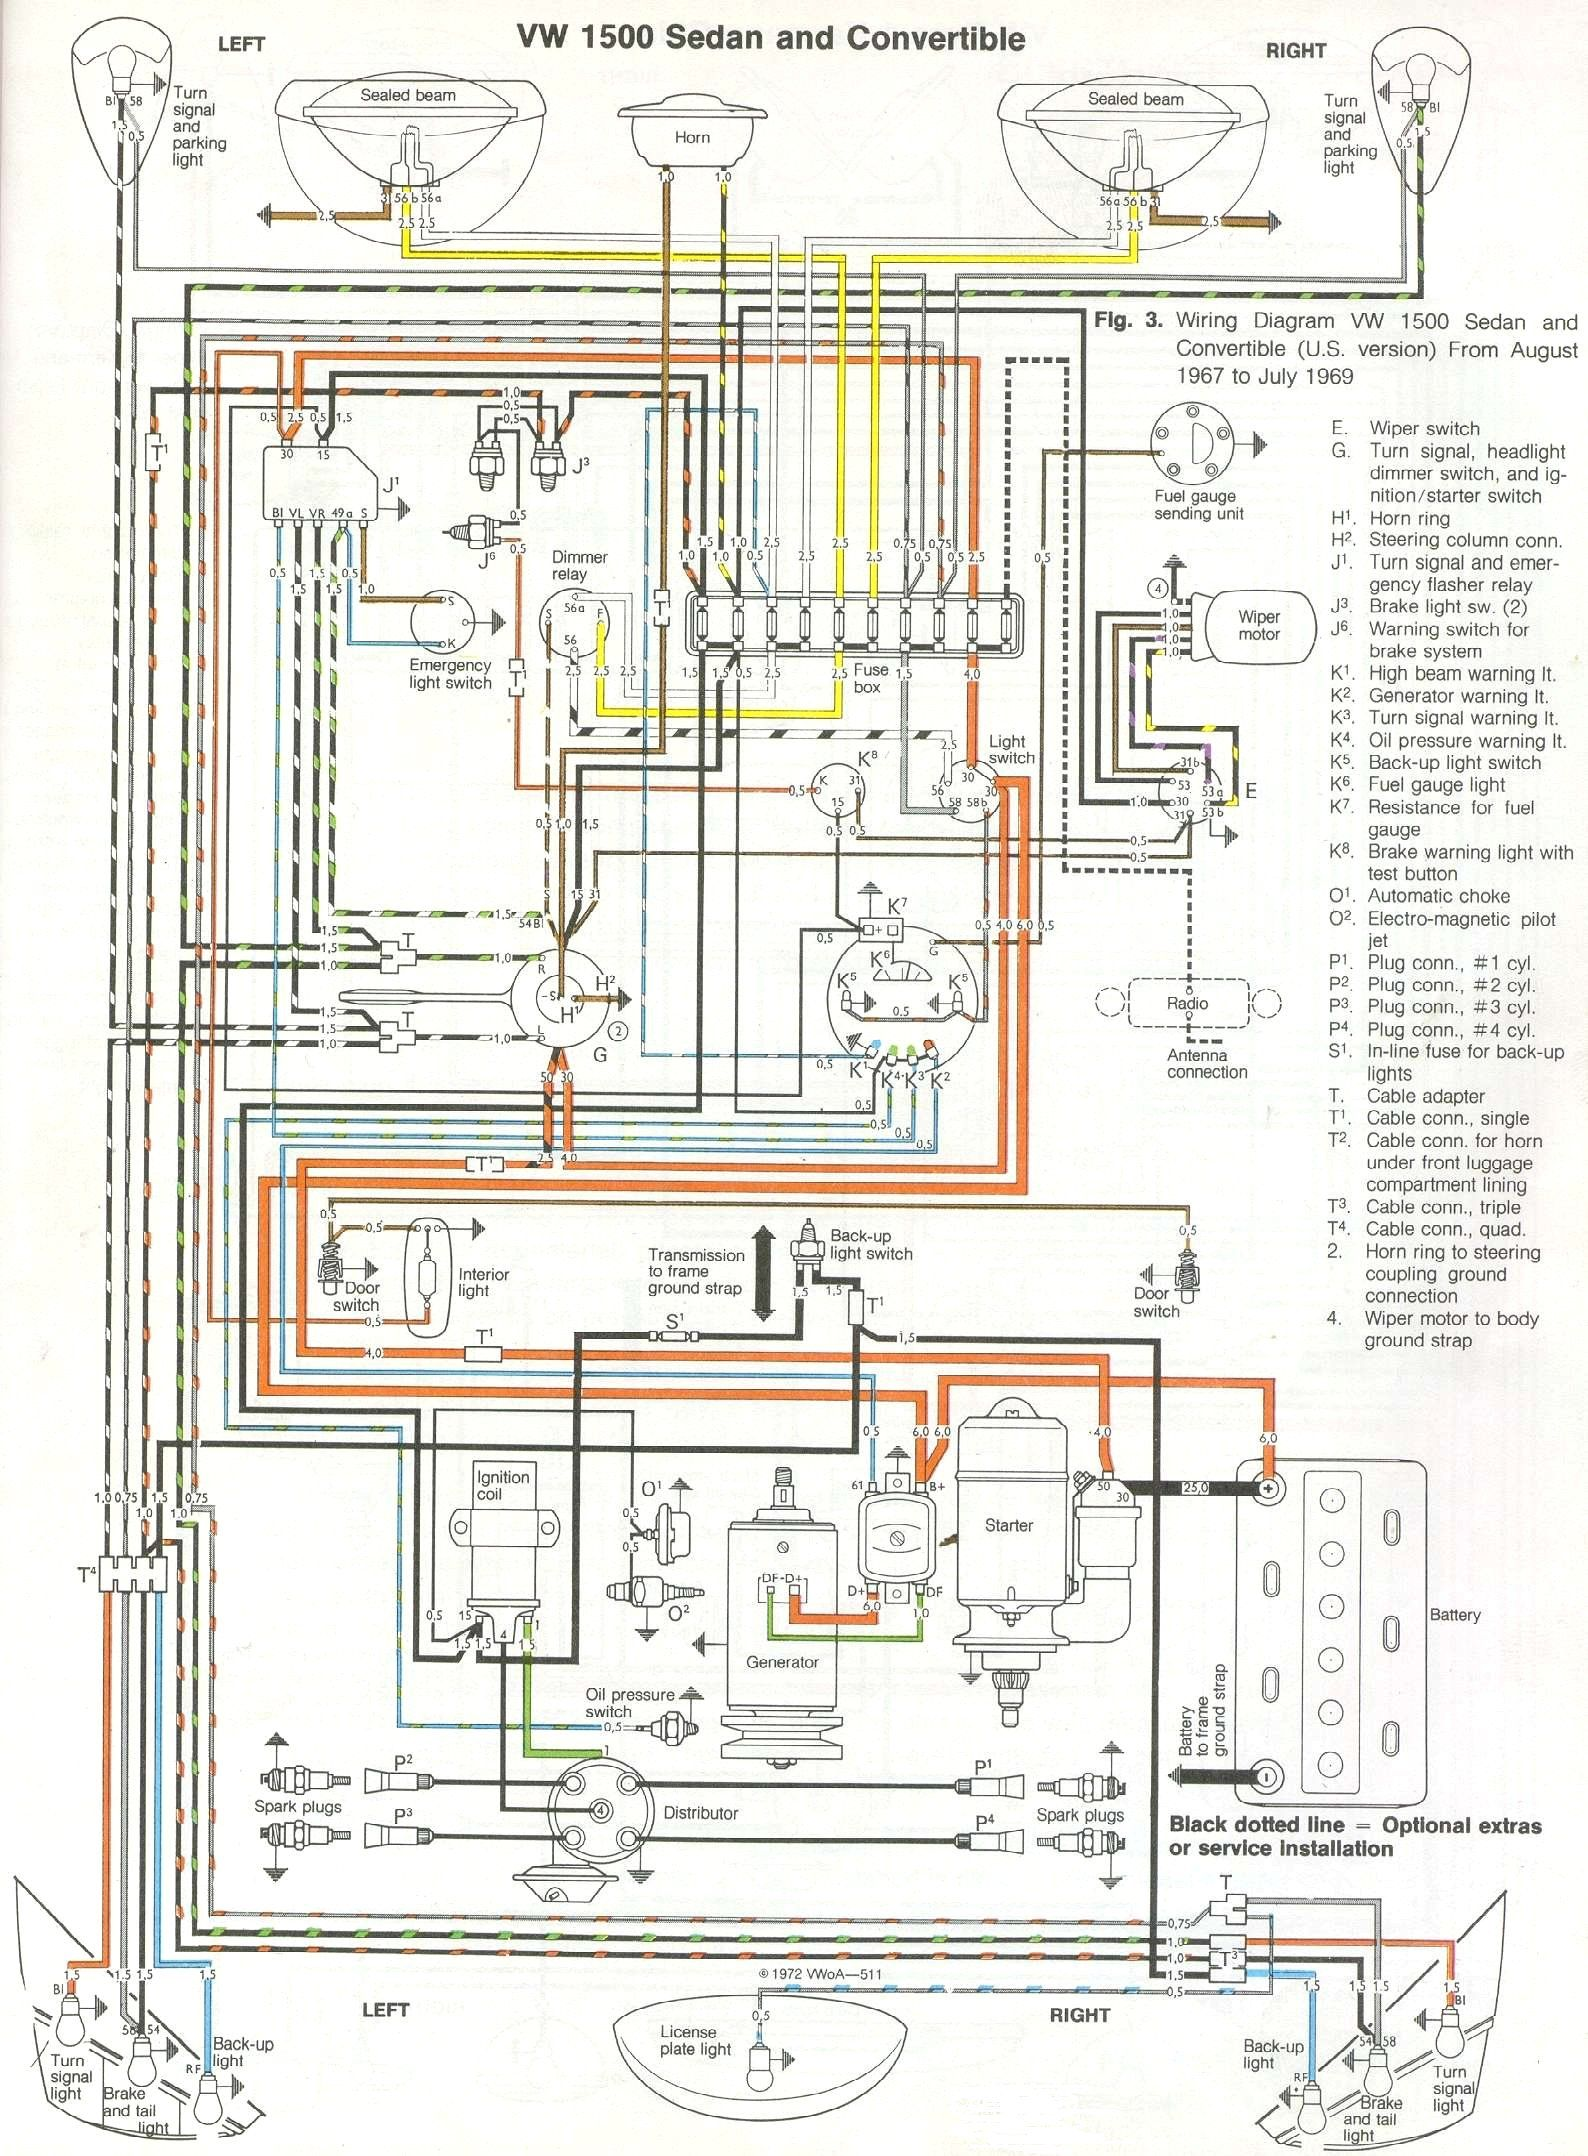 2005 Volkswagen Jetta Engine Diagram Wiring Library Vw Beetle The 1974 Experts Of U2022 Rh Evilcloud Co Uk 20 Turbo